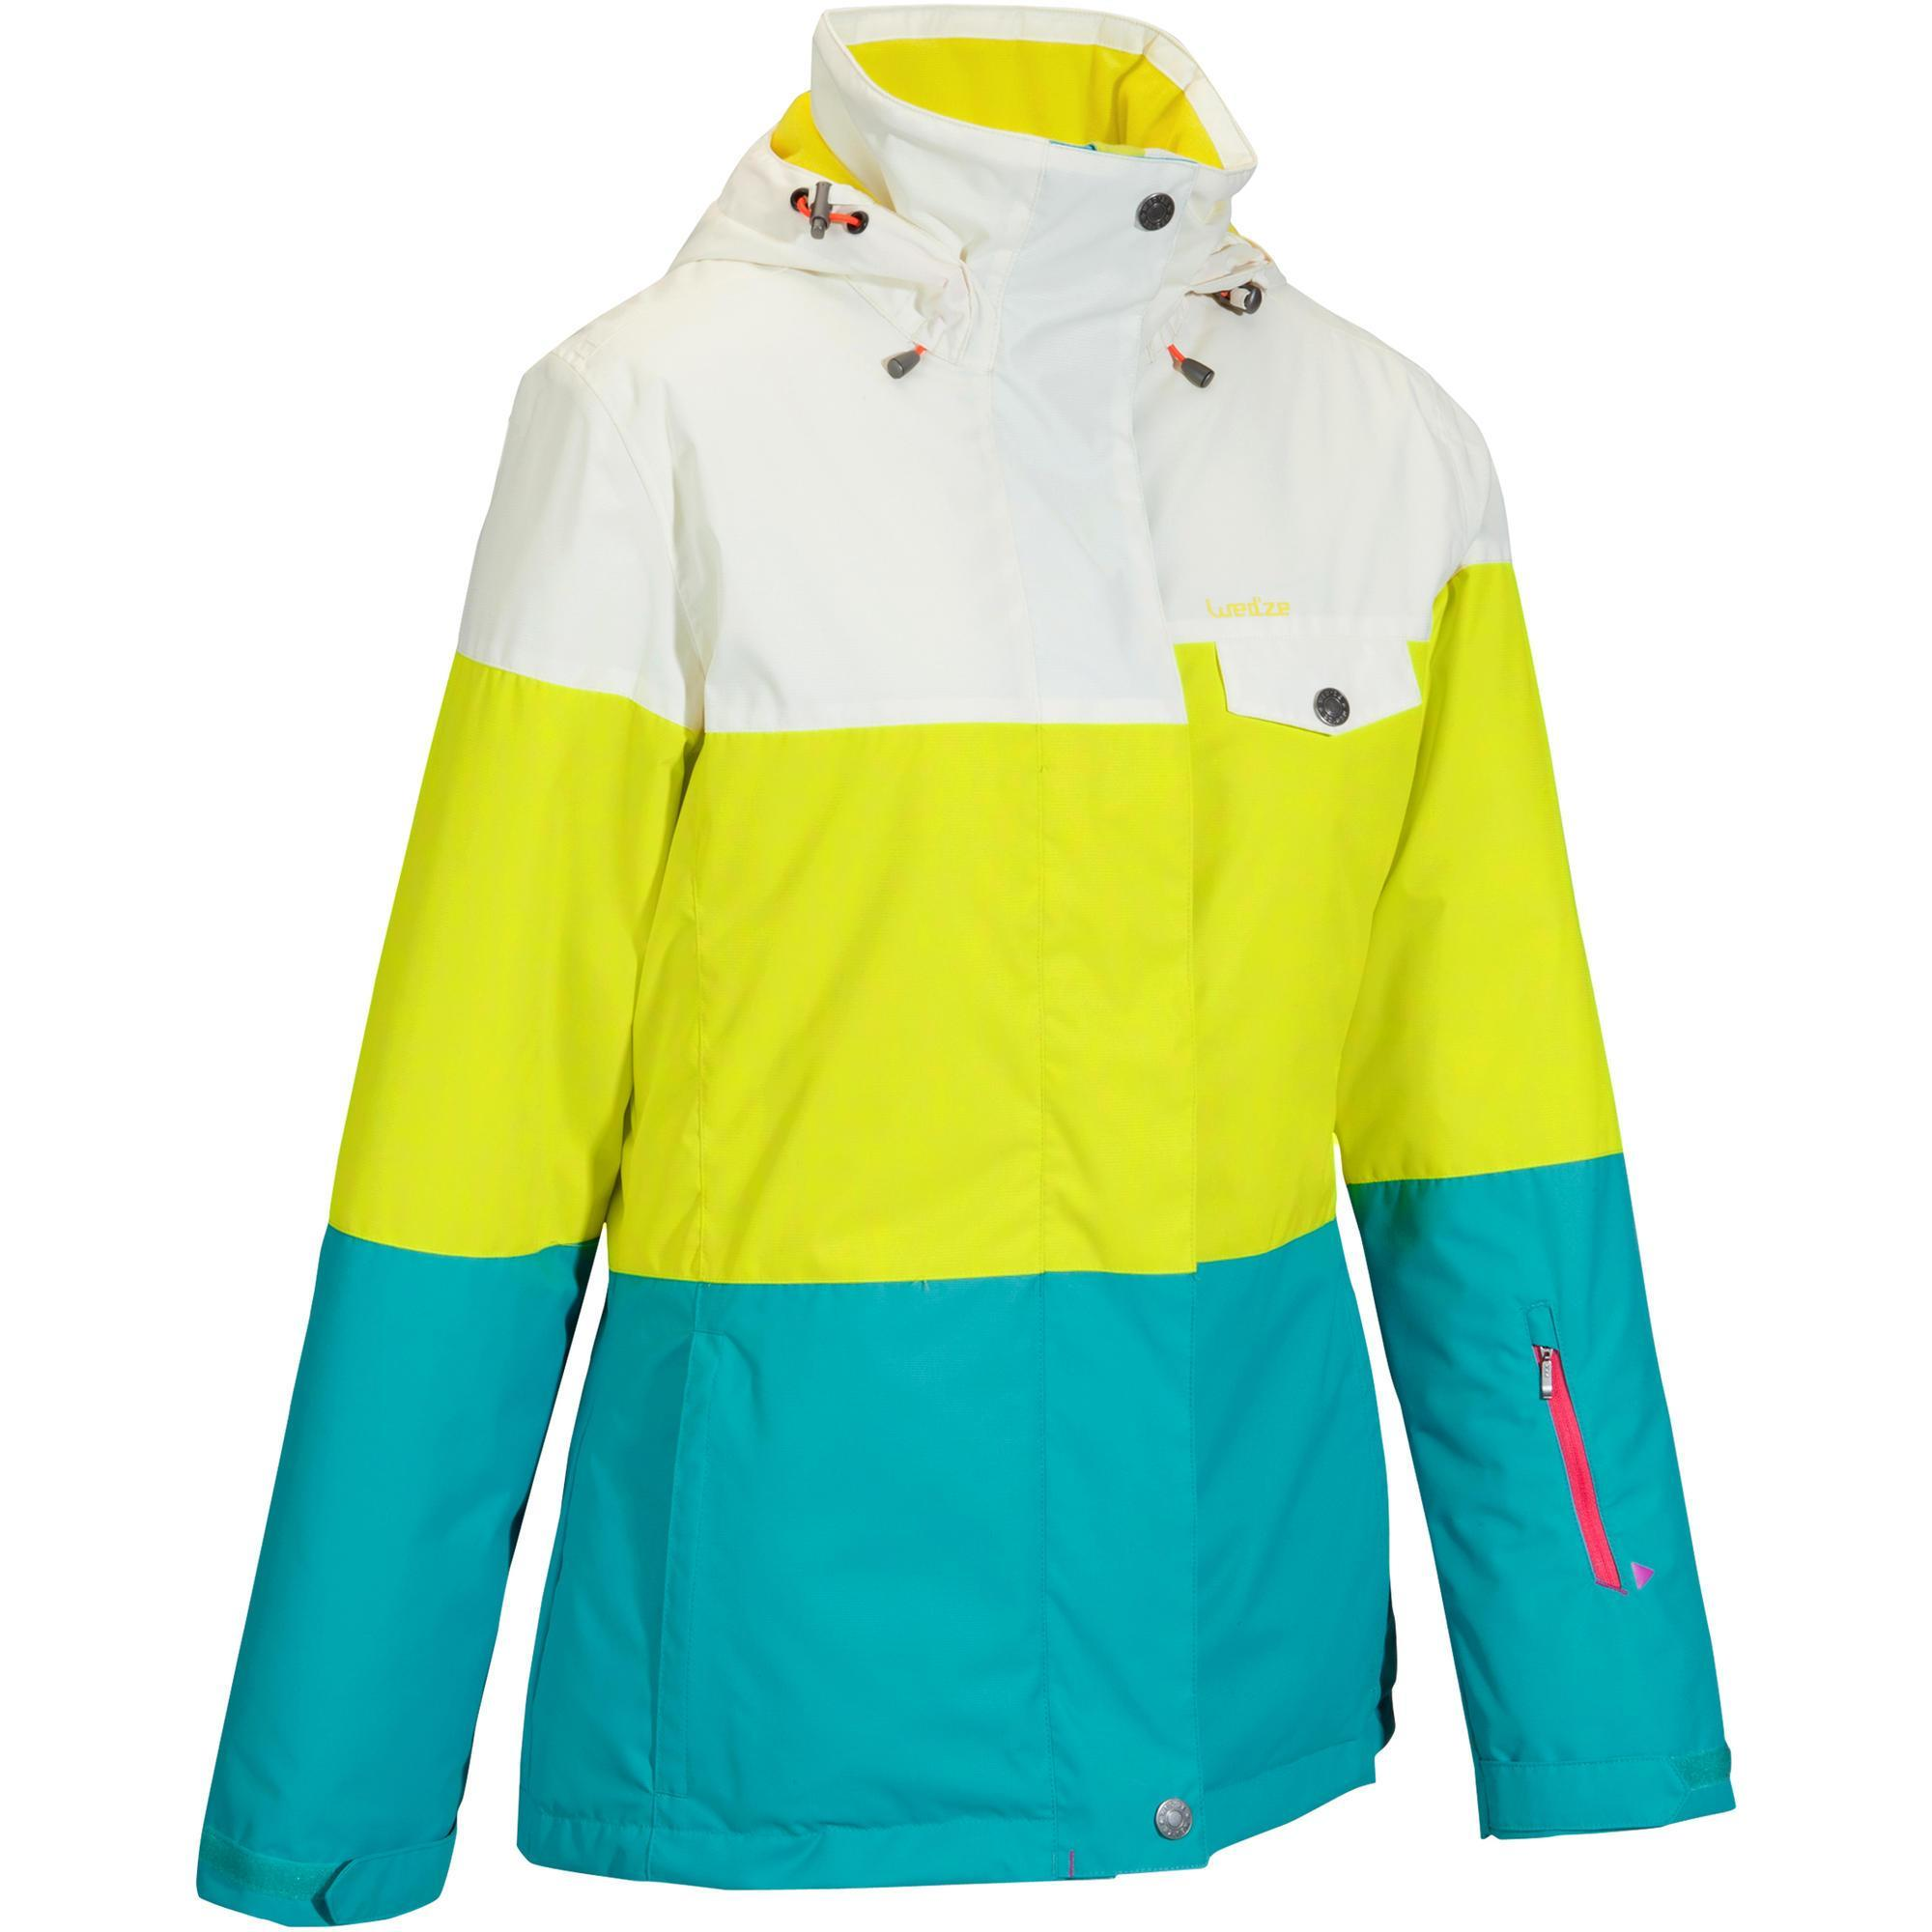 sci Giacca 300 FREE donna Wedze tricolore pwqwT7v